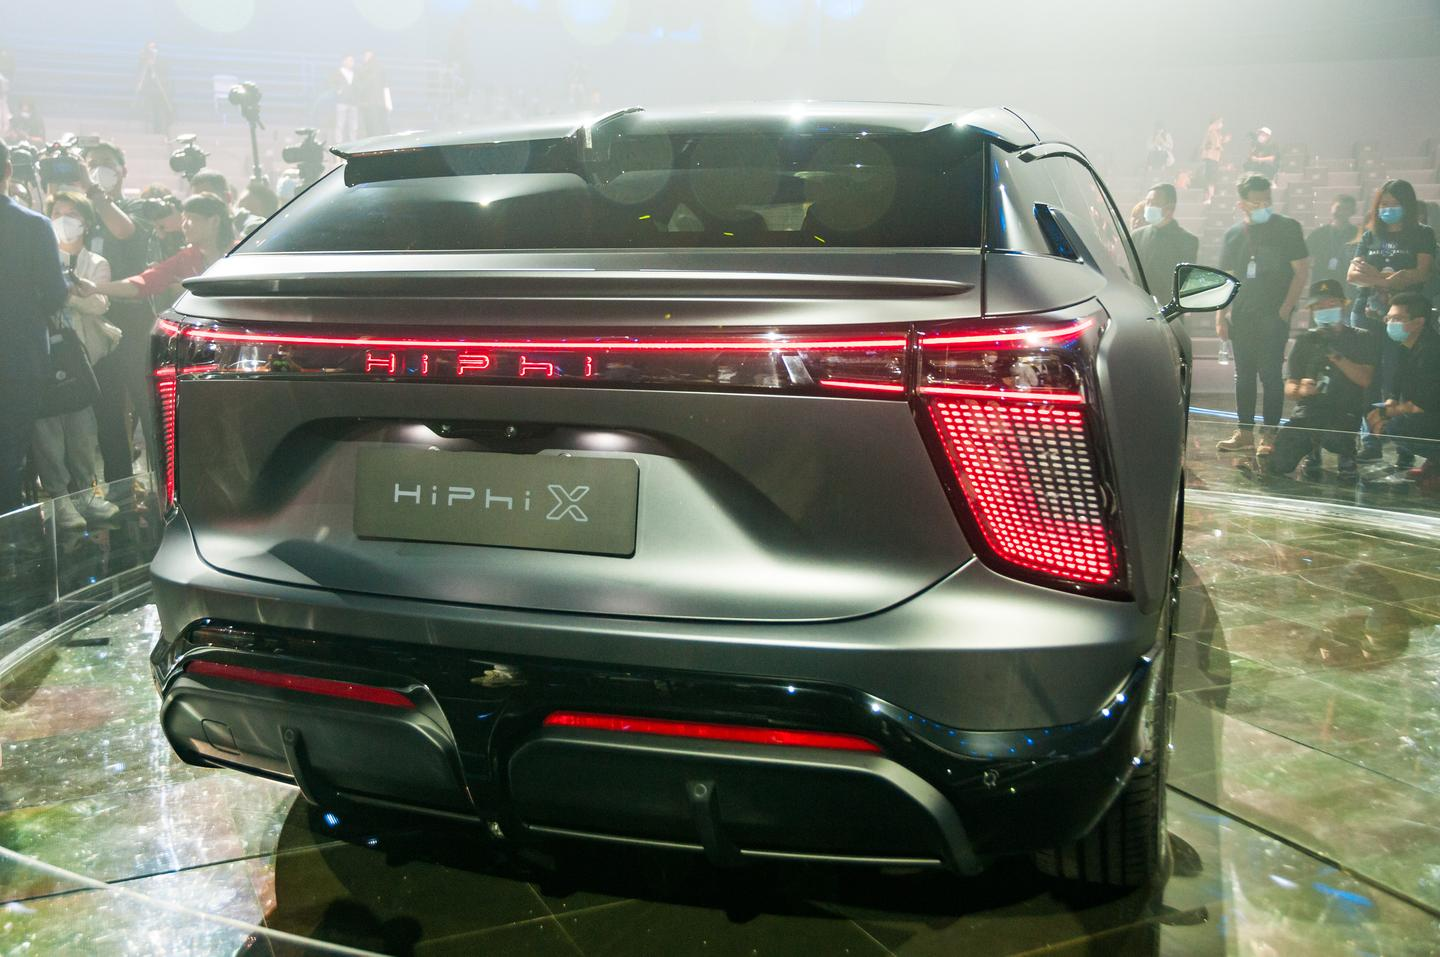 The four-seat Founder Edition HiPhi X SUV